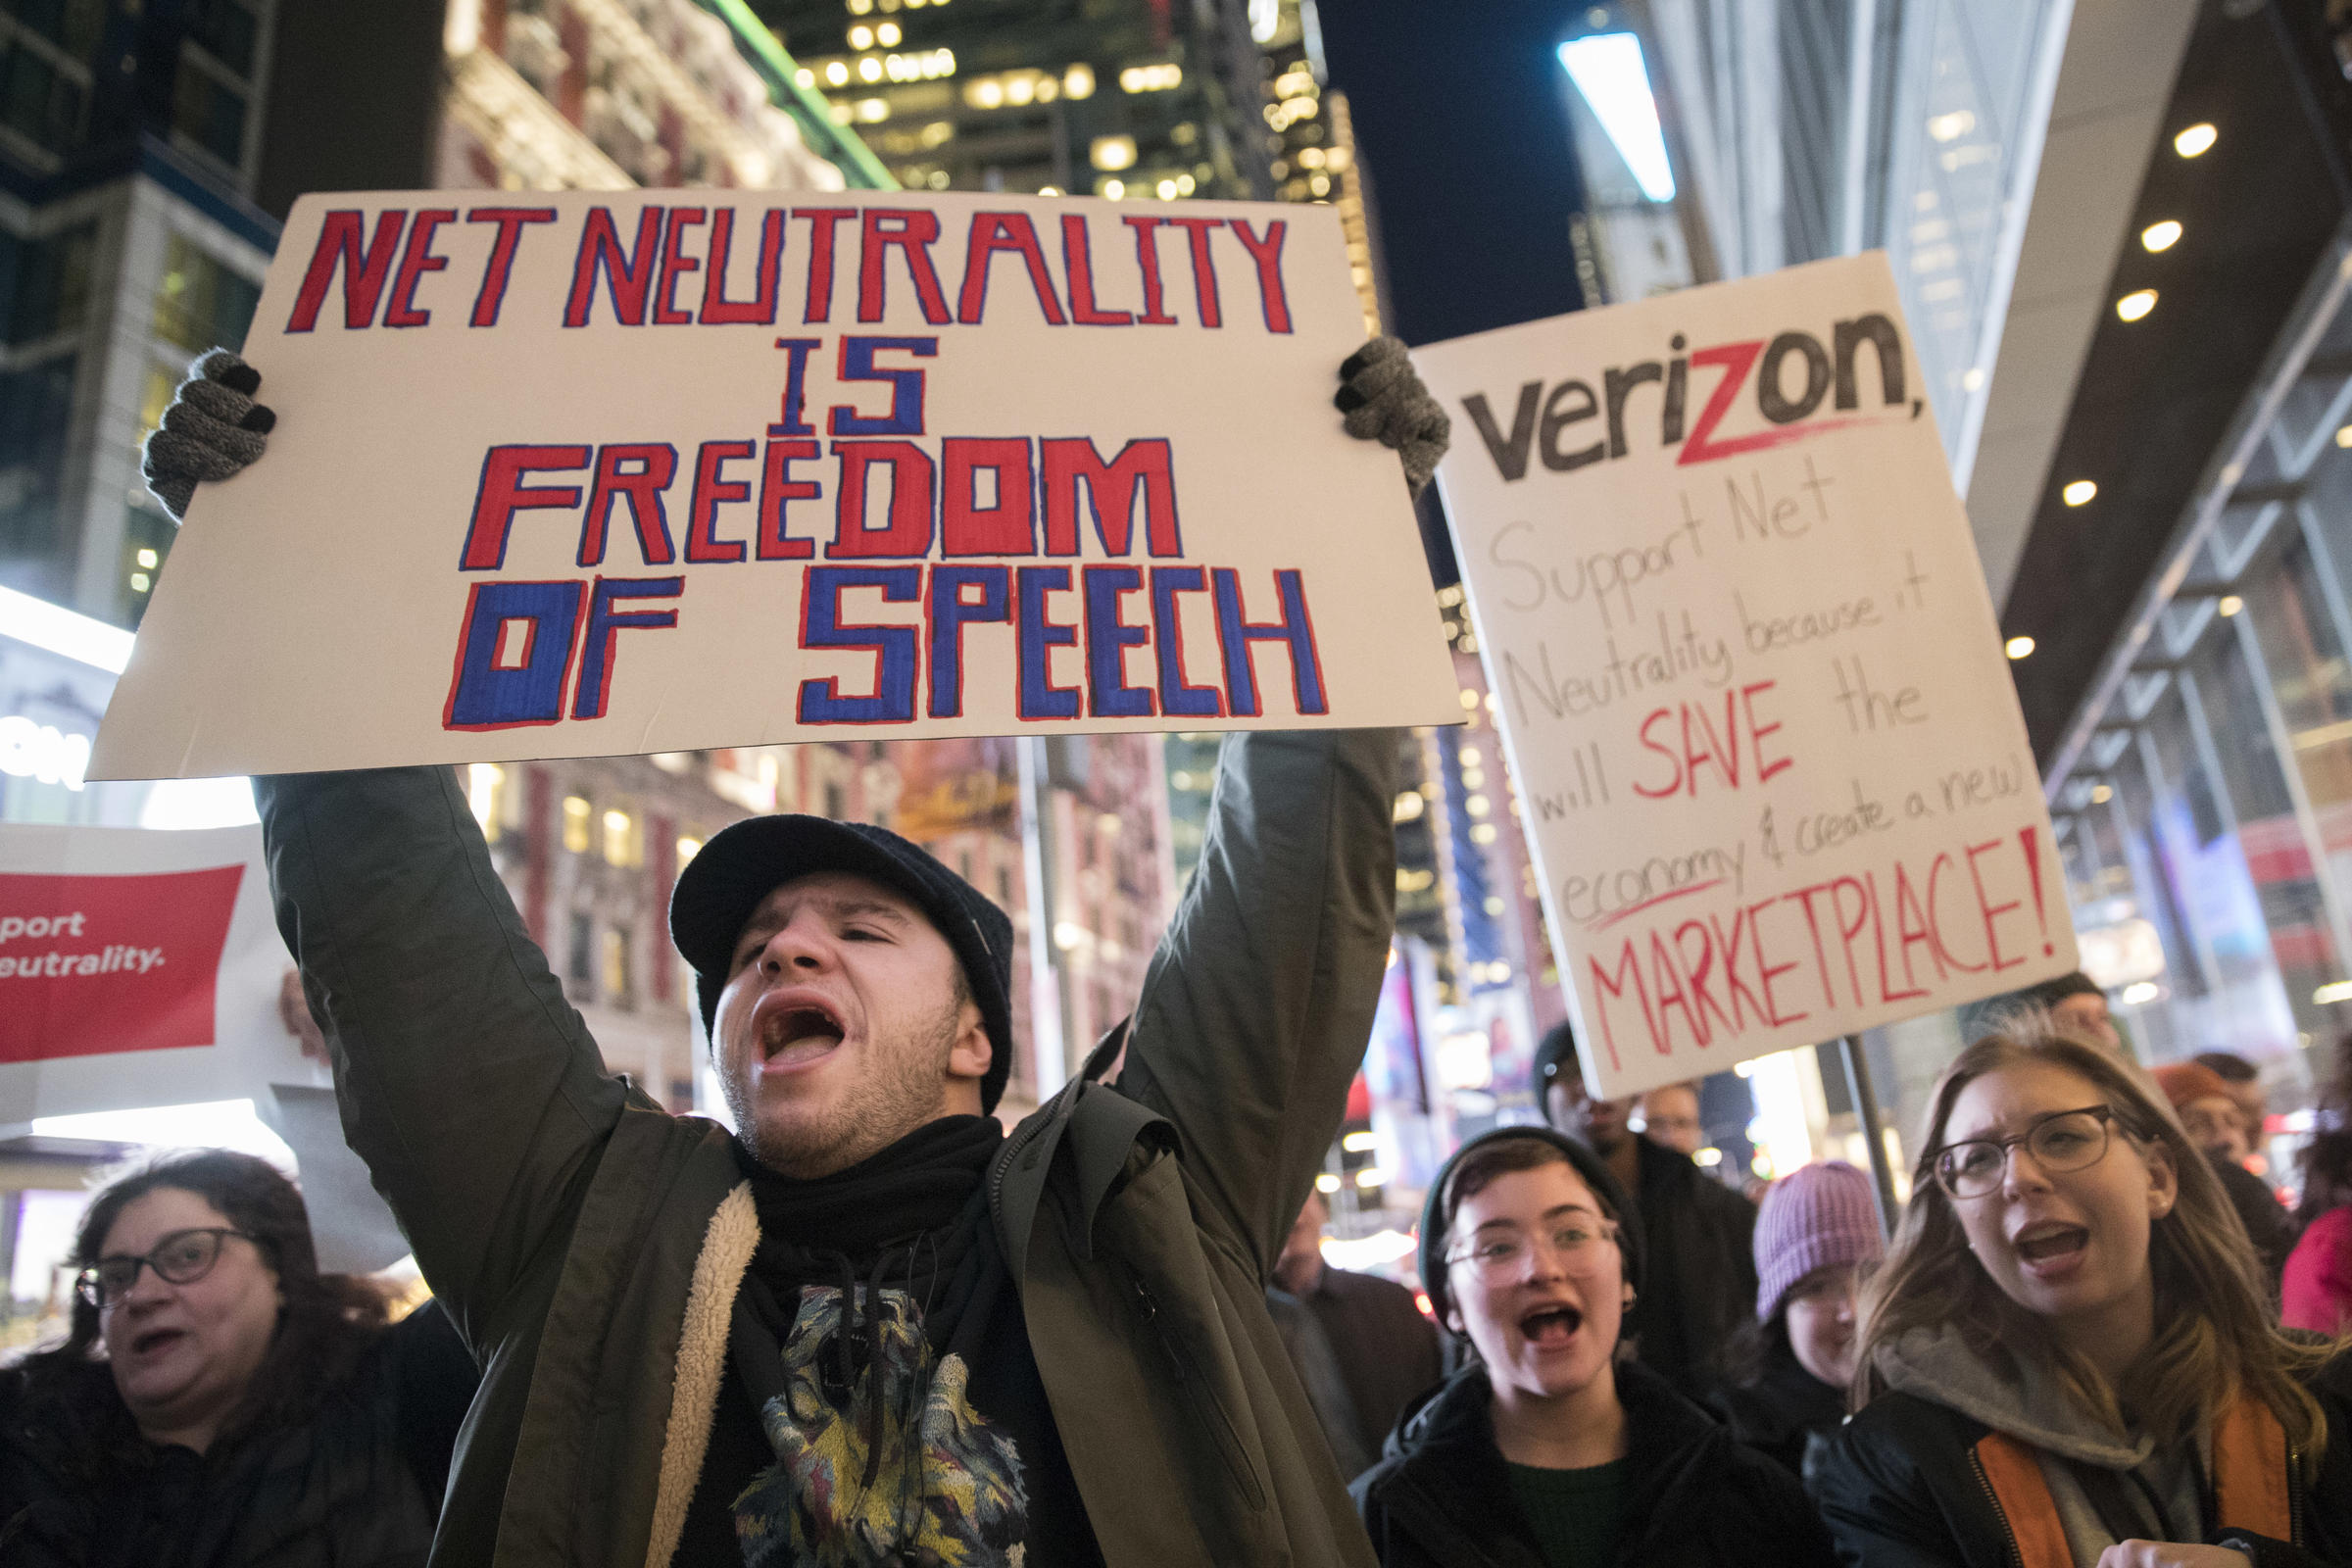 Democratic-Led States Go to Court to Reinstate Net Neutrality